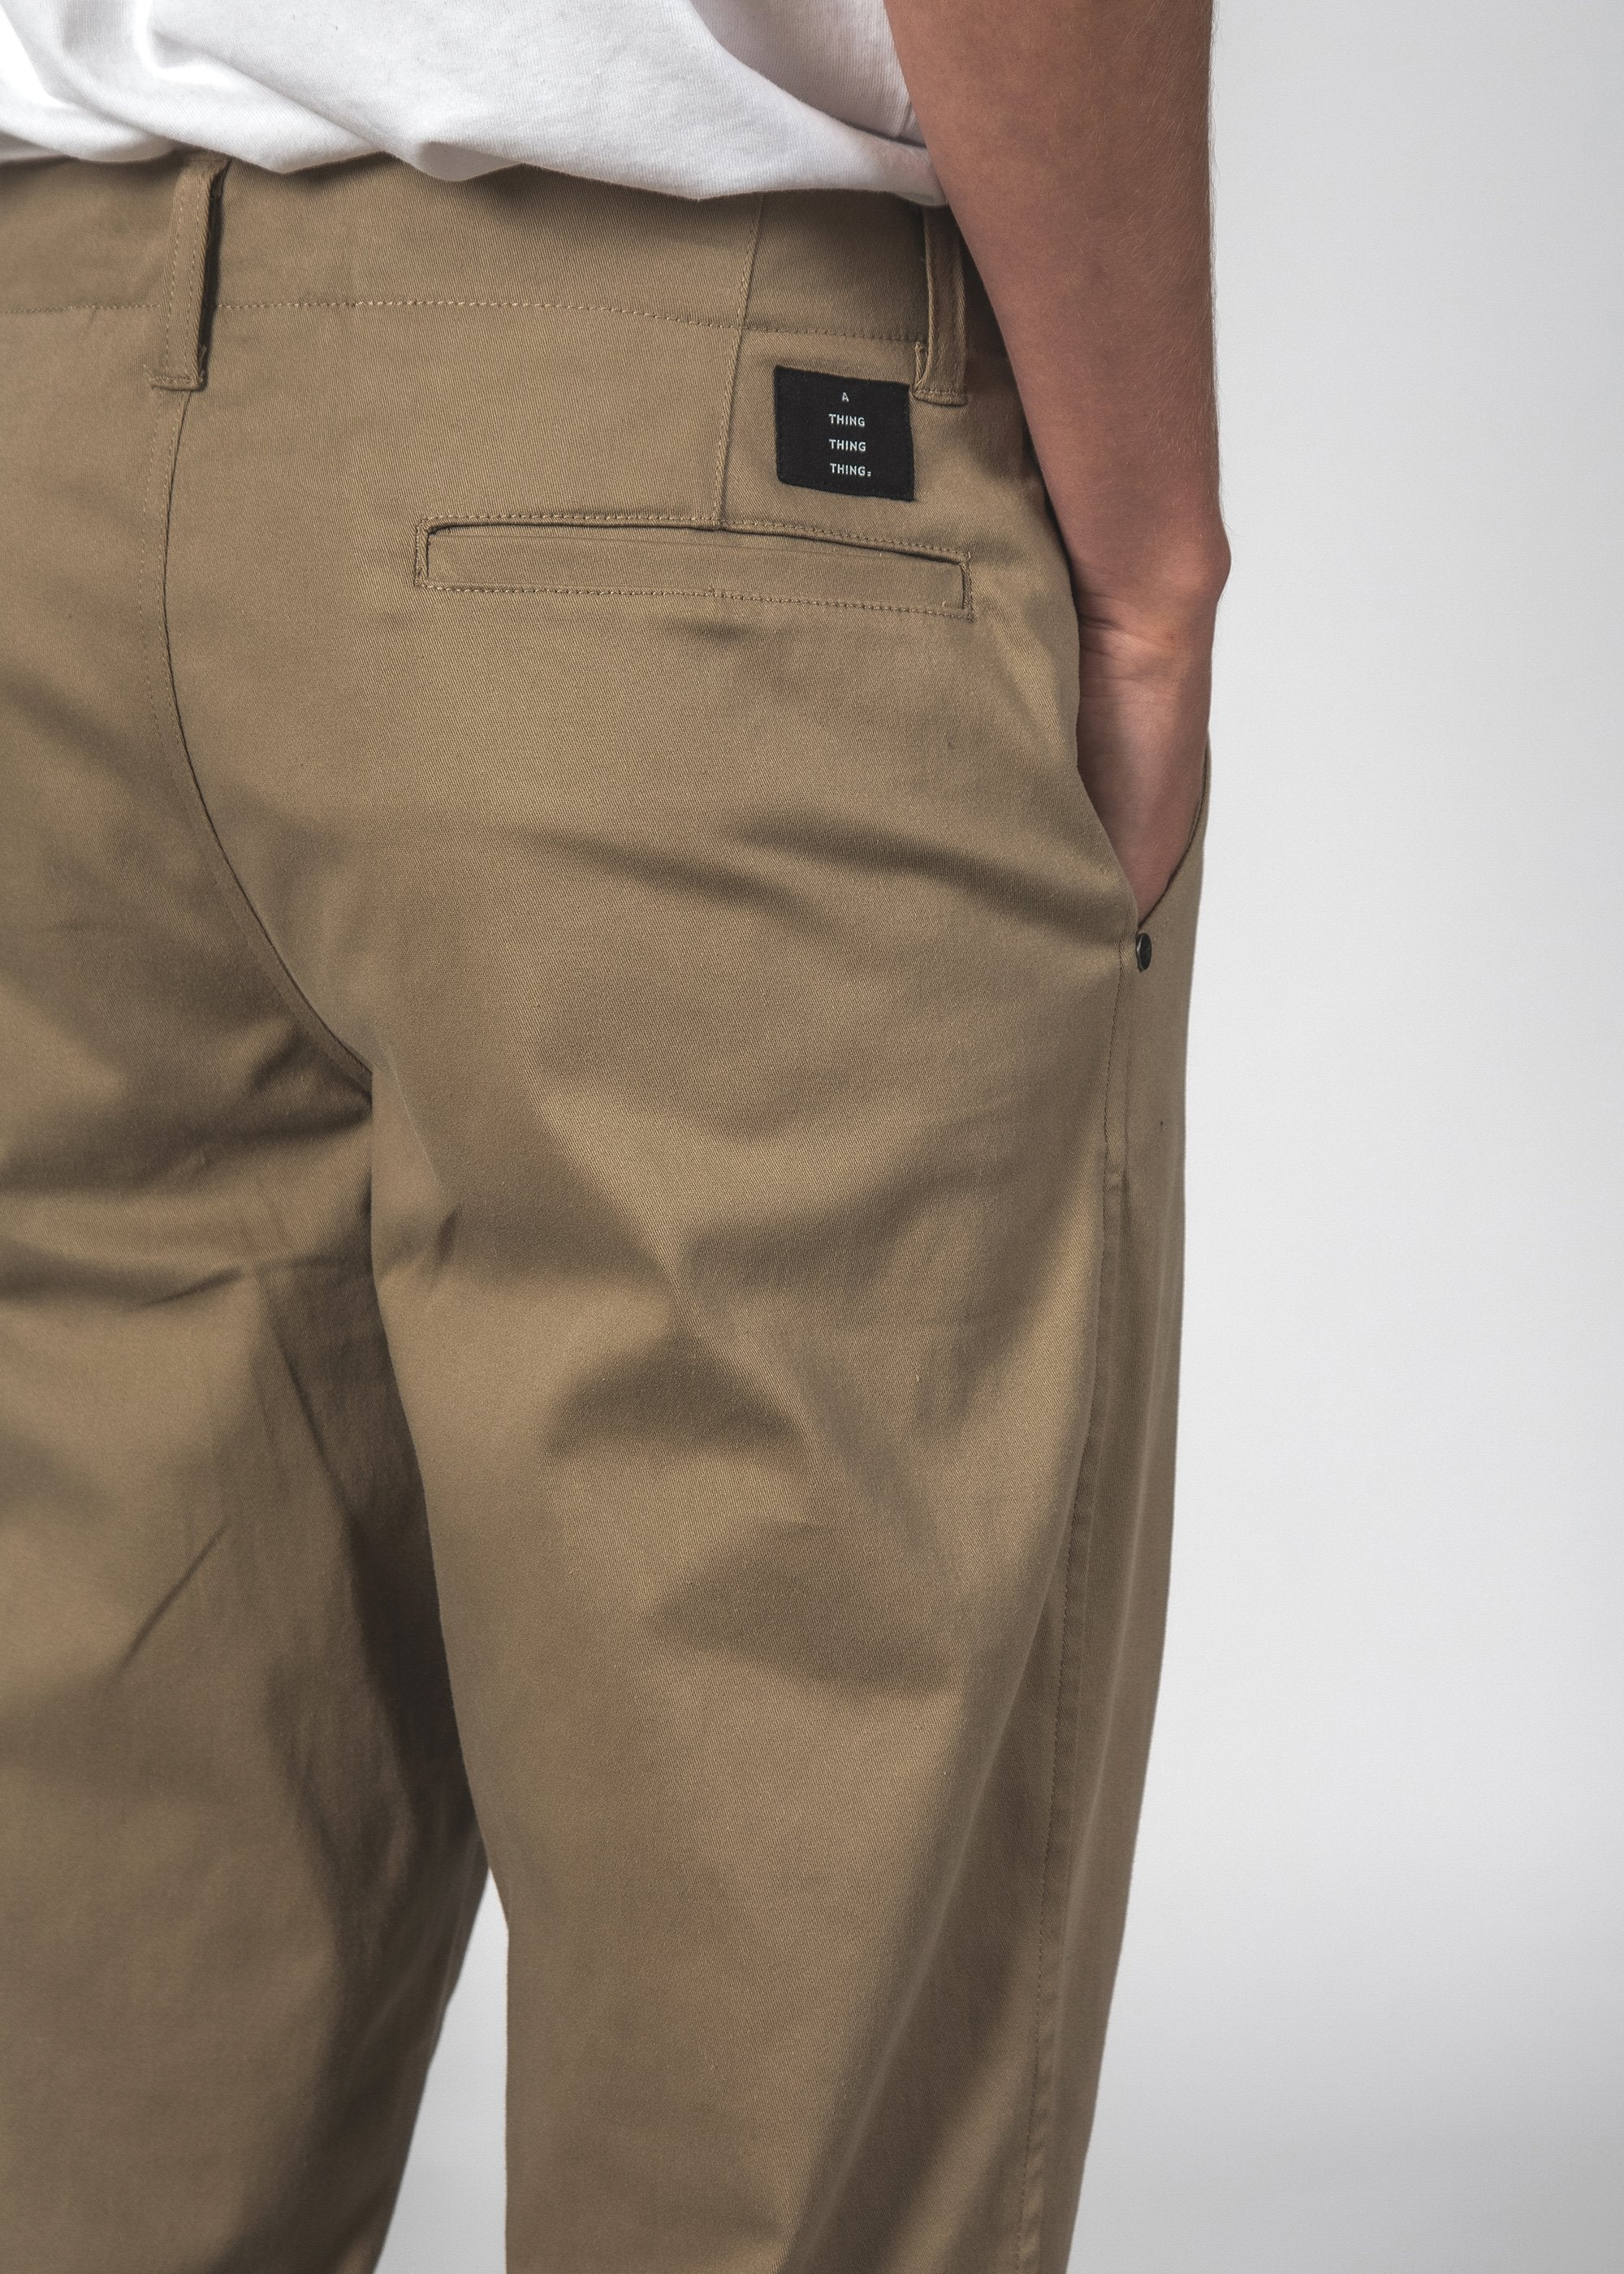 SALE - AXIS PANT - Tan